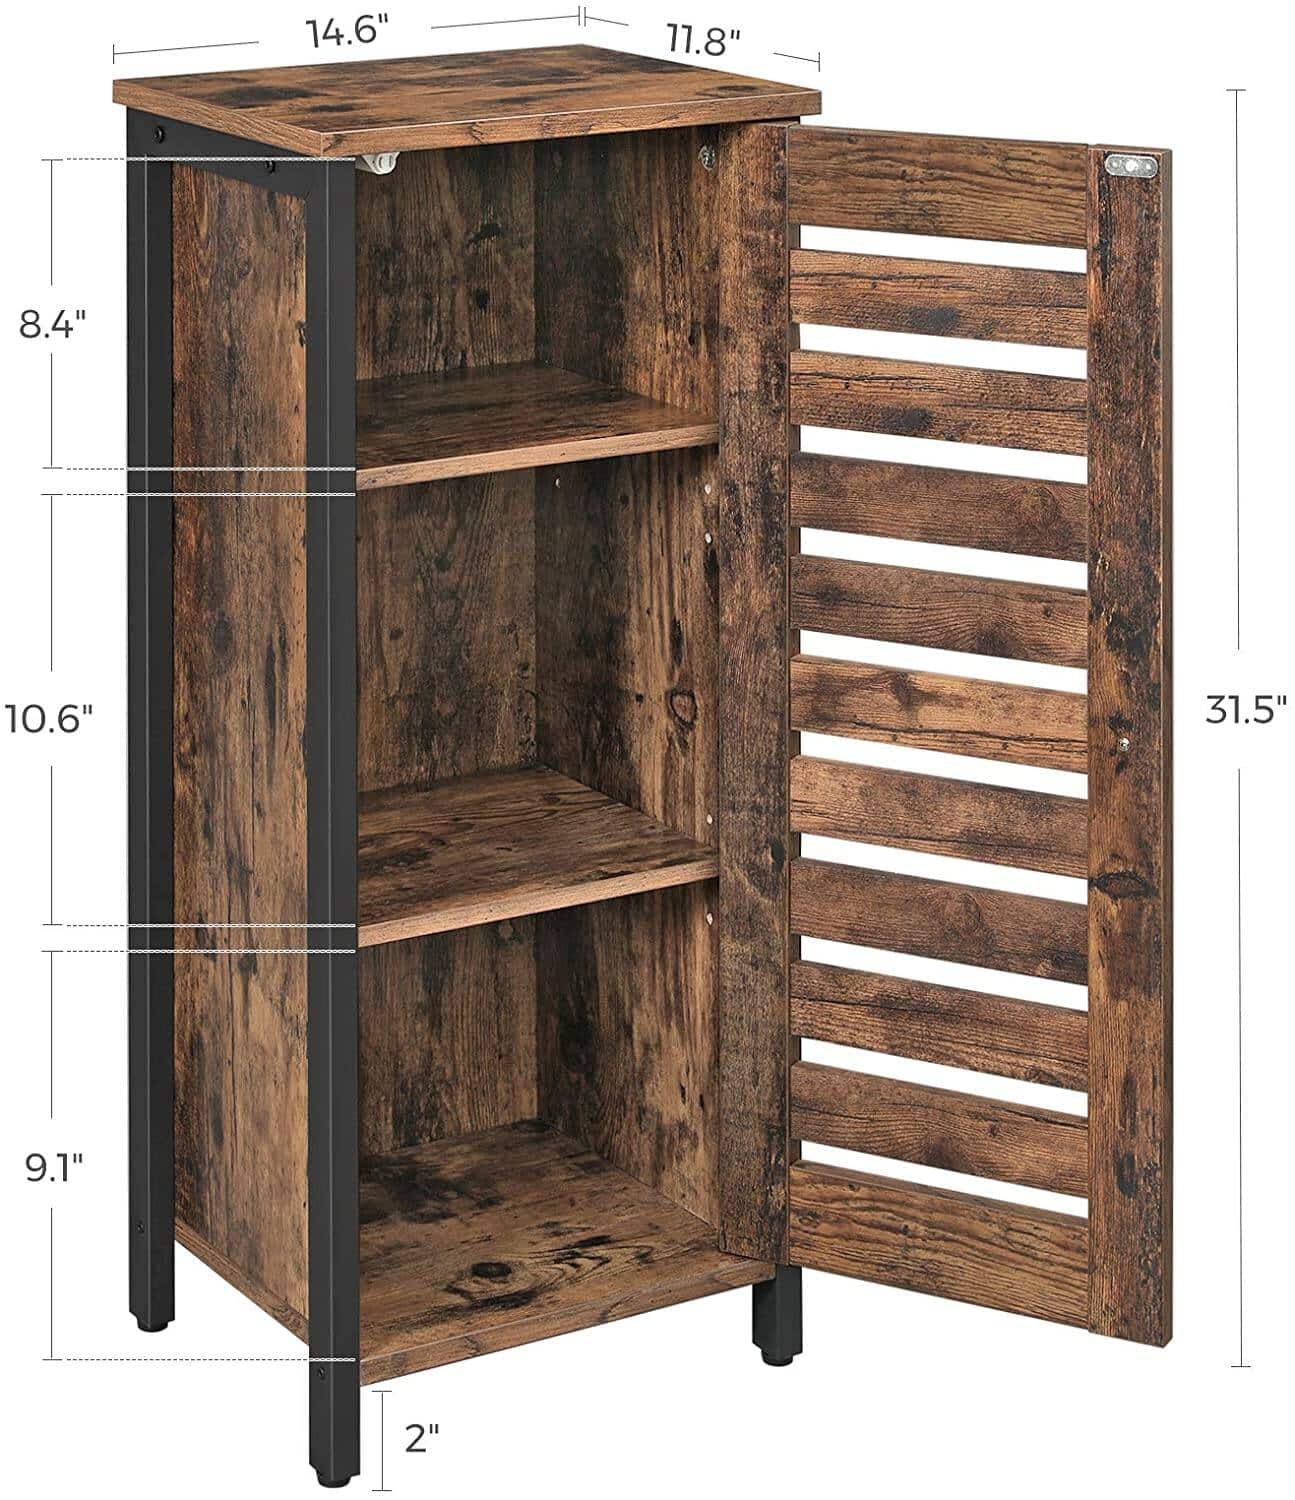 VASAGLE Storage Cabinet Products for Living Room, Kitchen & Dining Room Starts from $47.99 + Free Shipping